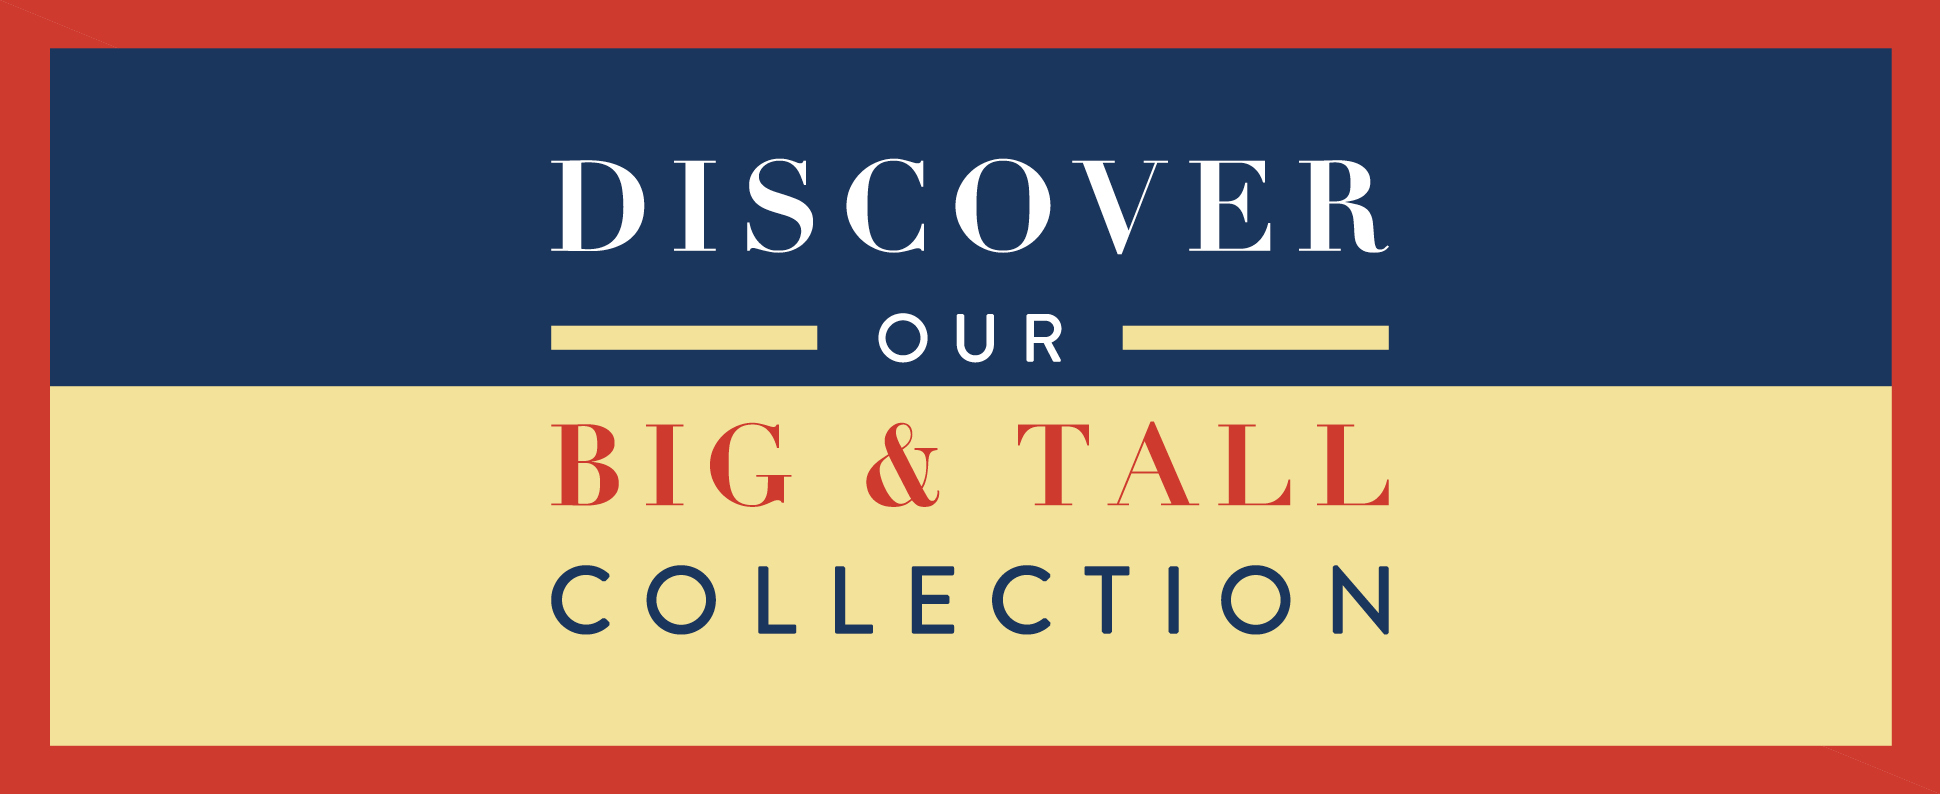 big & tall collection